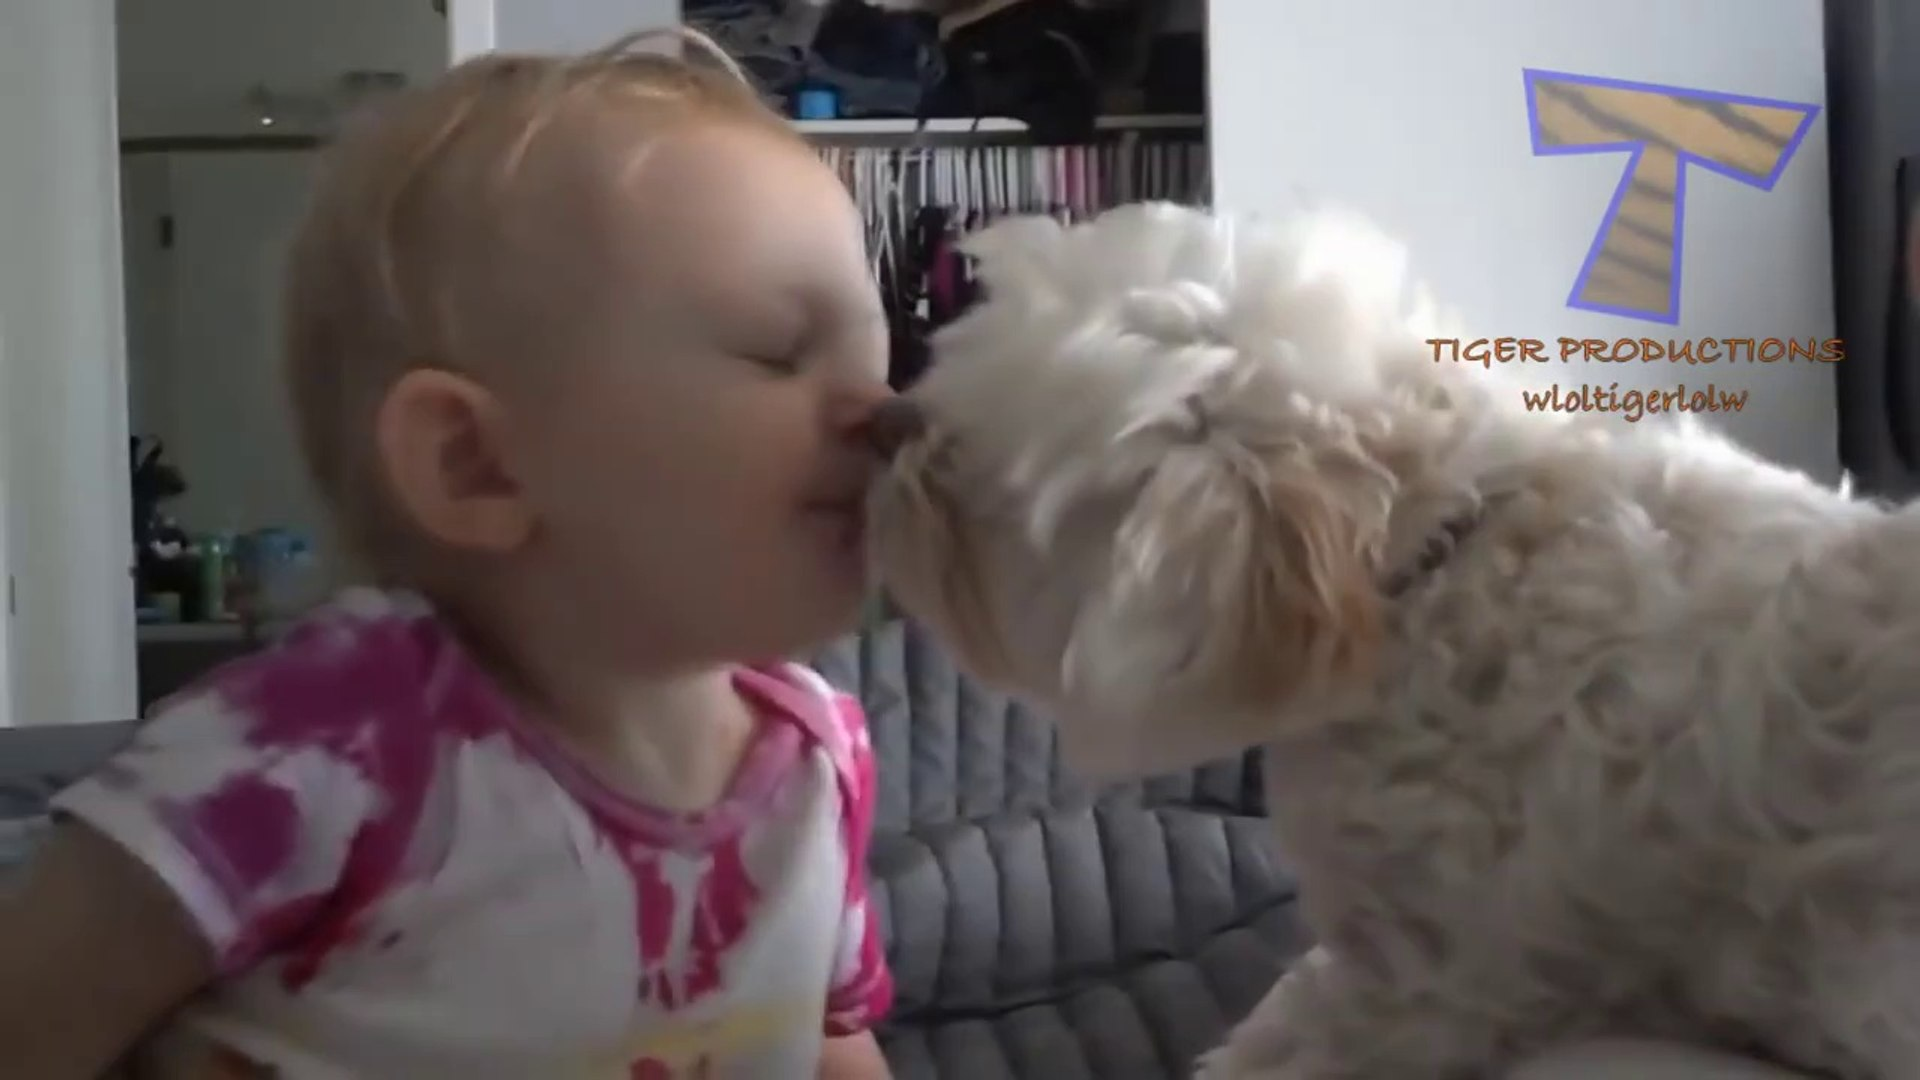 http://www.dailymotion.com/video/x5lijd3_babies-and-pets-having-fun-together-funny-and-cute-baby-ani